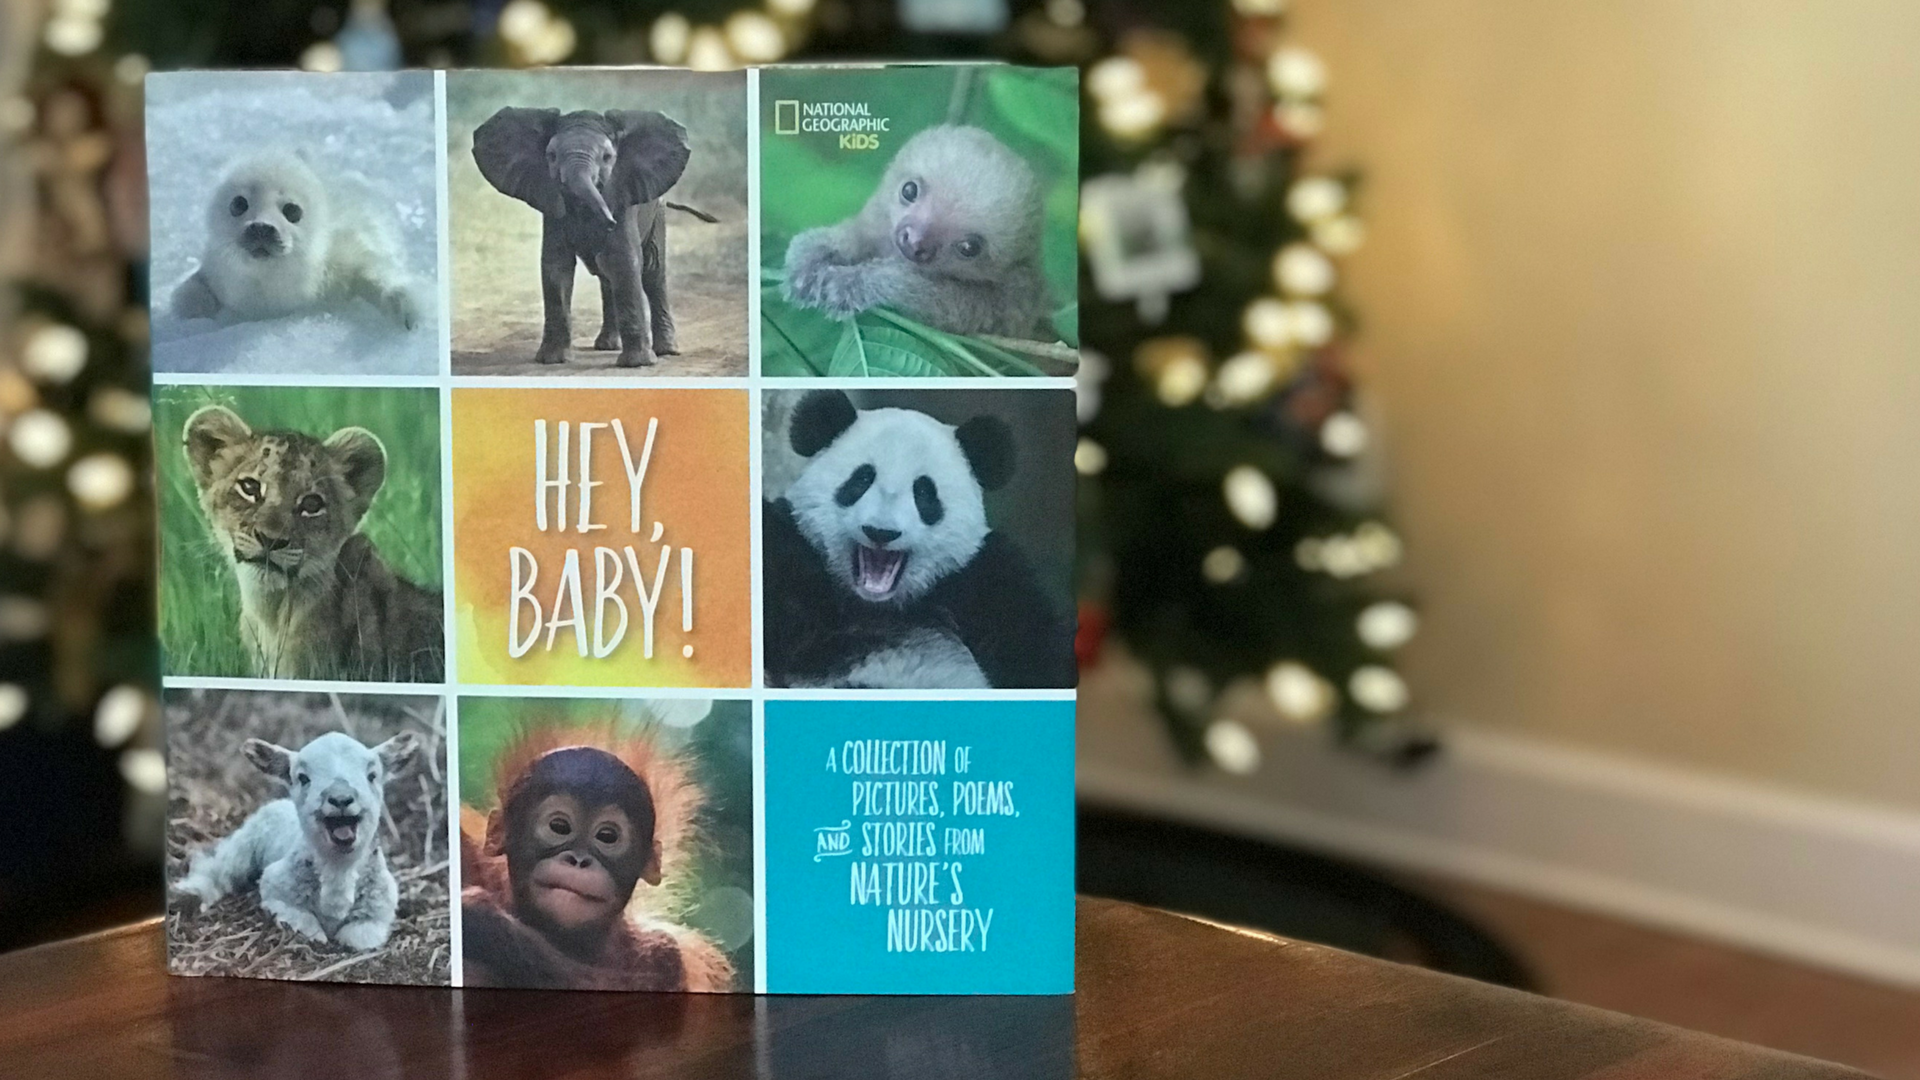 Hey Baby National Geographic Books For Kids